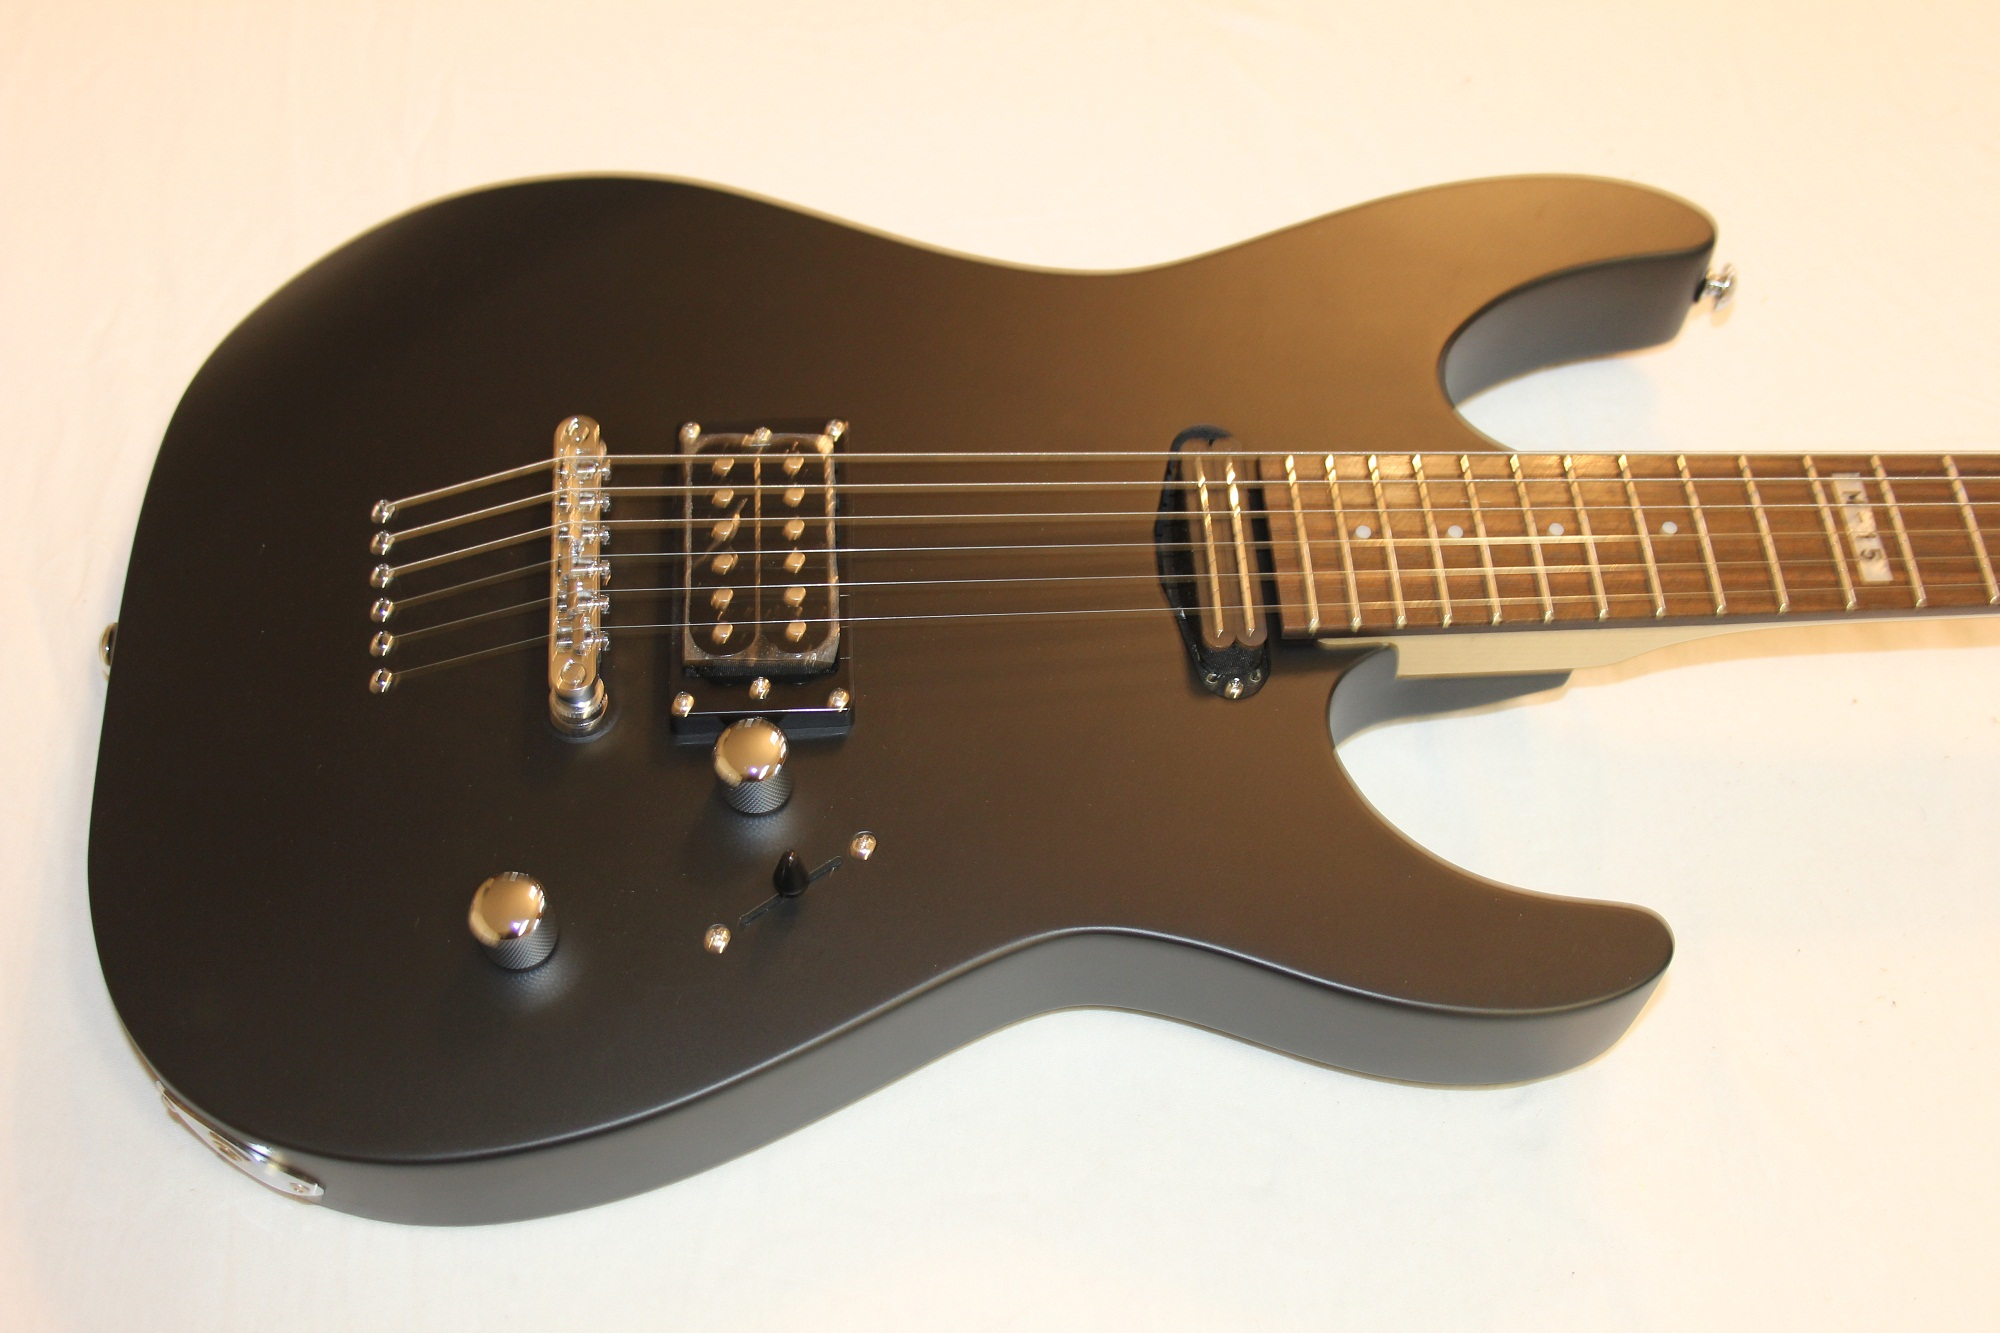 esp ltd m 15 black satin sample prototype electric guitar 6. Black Bedroom Furniture Sets. Home Design Ideas